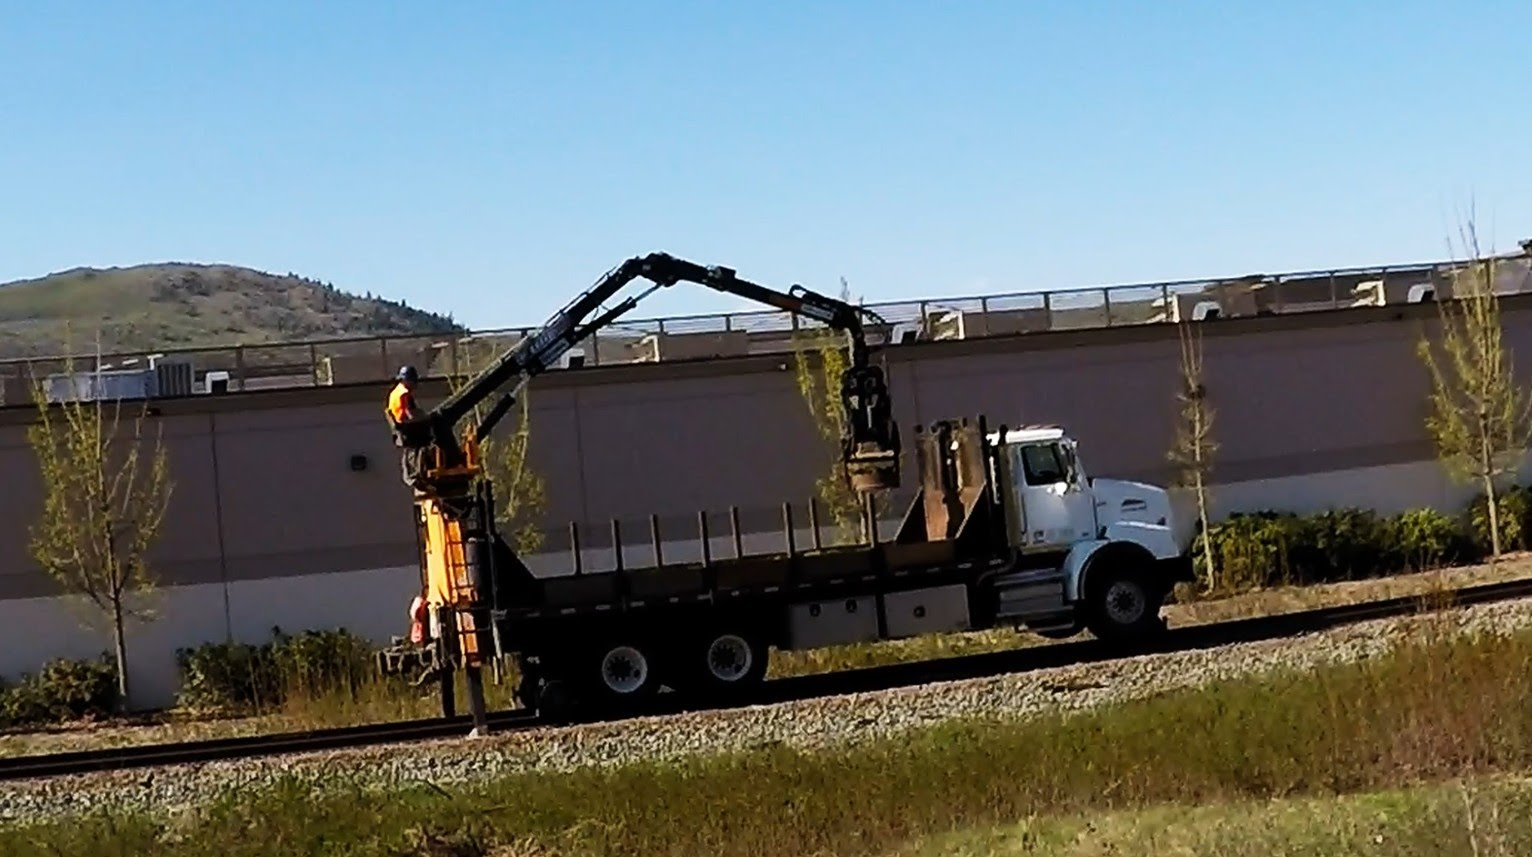 CN RAIL TRACK MAINTENANCE -- Western Star Truck Road/Rail Transition